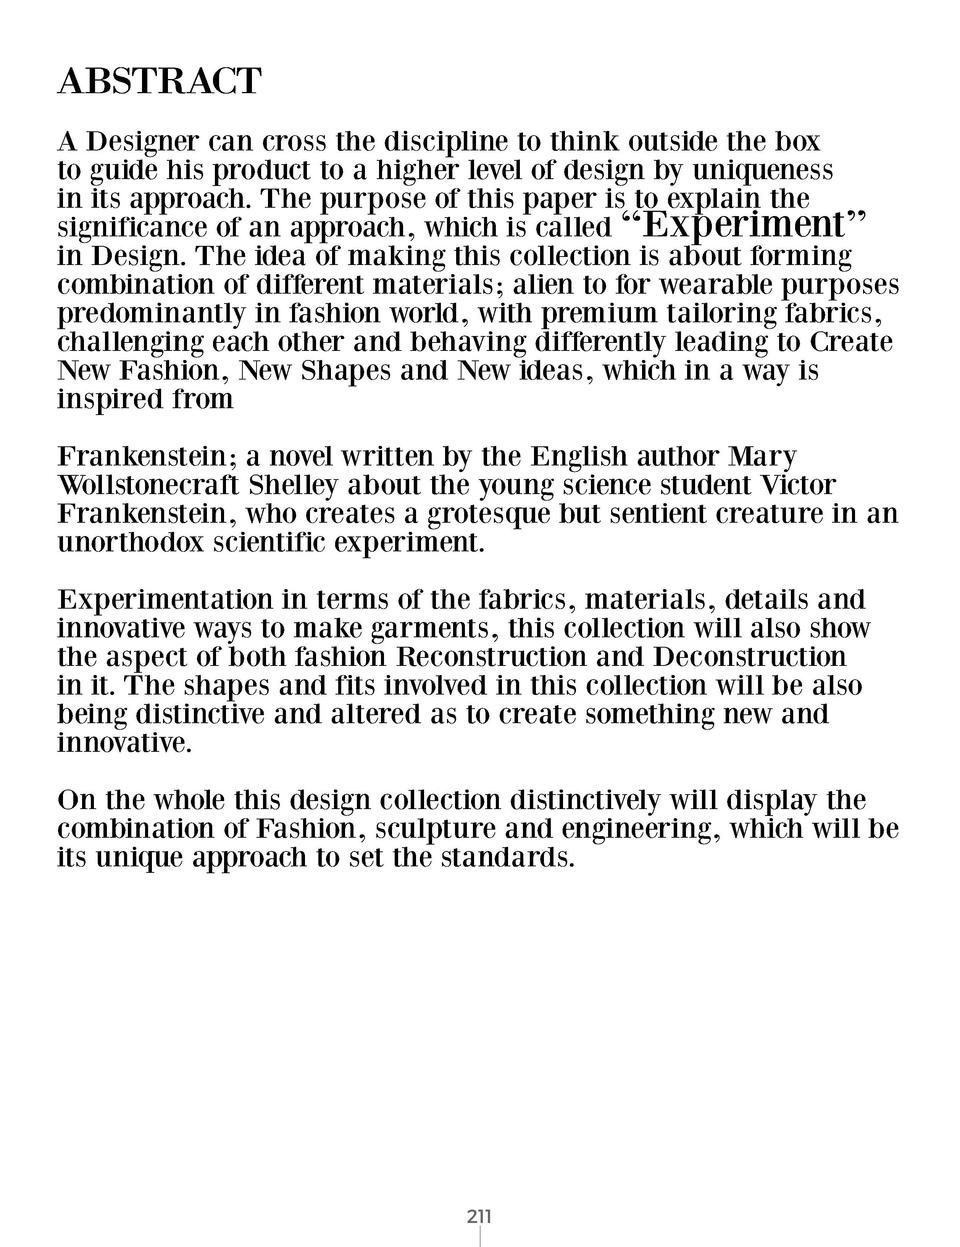 ABSTRACT  FRANKENSTEIN MASTERS OF ARTS FINAL PROJECT A BOOK DRIVEN THEME BASED COLLECTION  THE BRIEF  Design a Collection ...